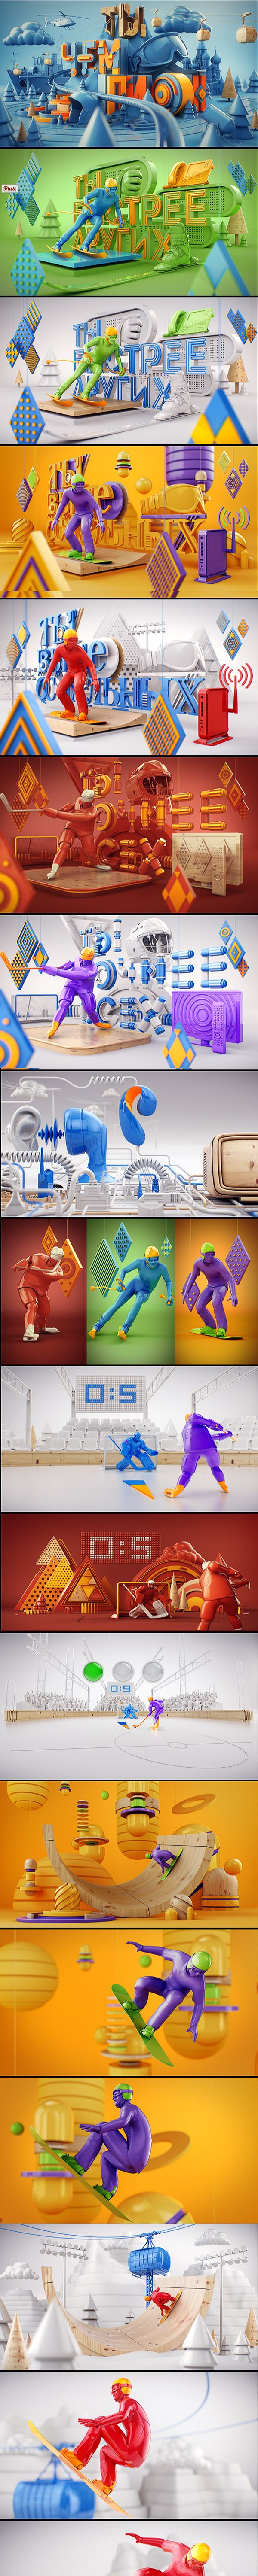 https://www.behance.net/gallery/Rostelecom-Olympic-Promosite/15758477